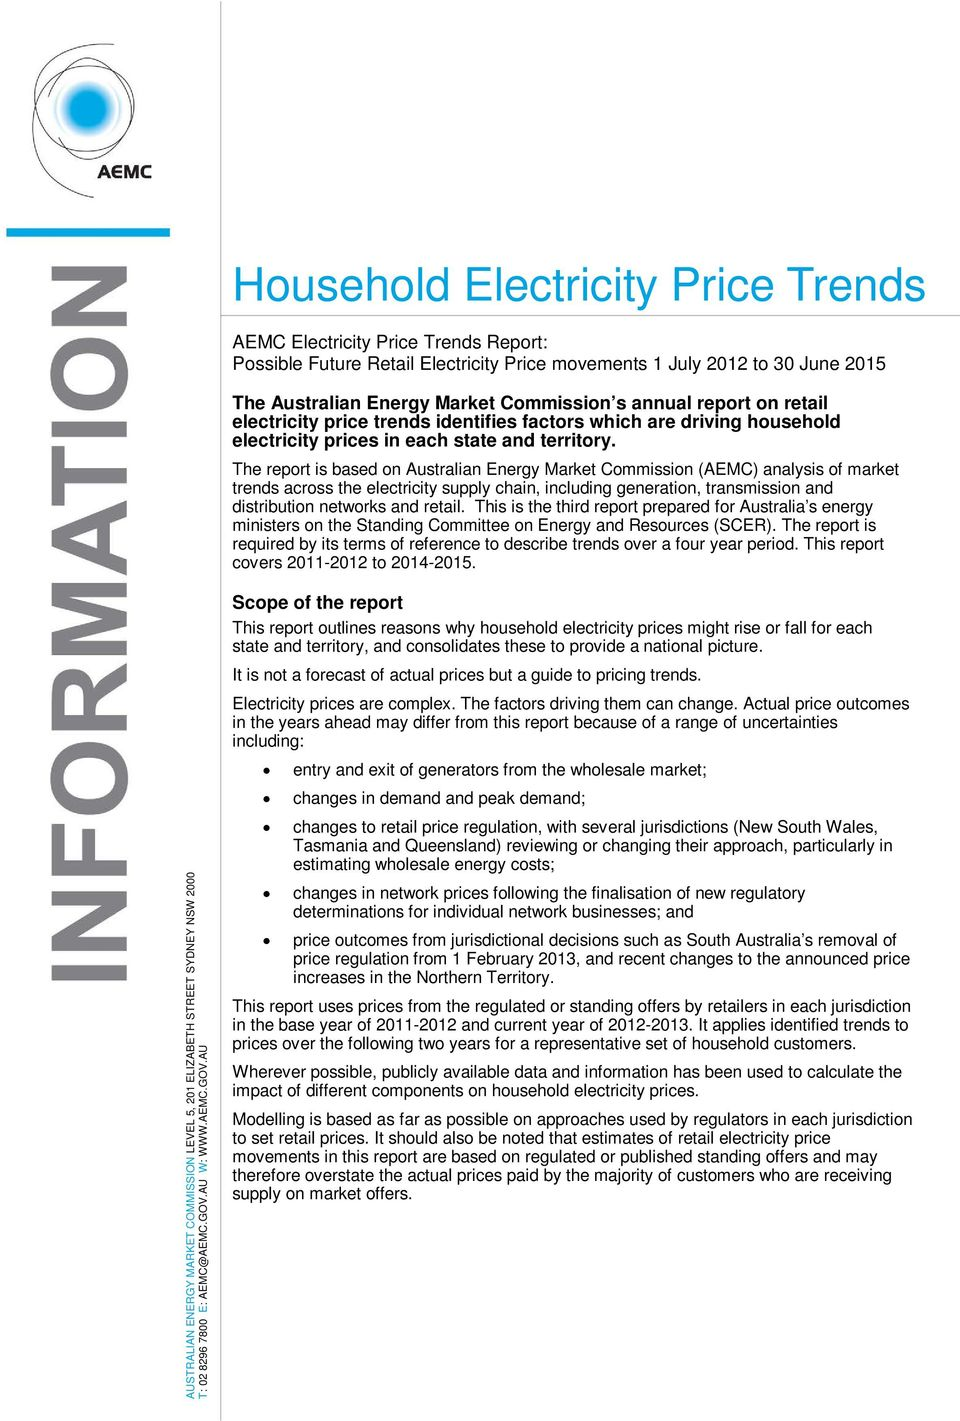 The report is based on Australian Energy Market Commission (AEMC) analysis of market trends across the electricity supply chain, including generation, transmission and distribution networks and